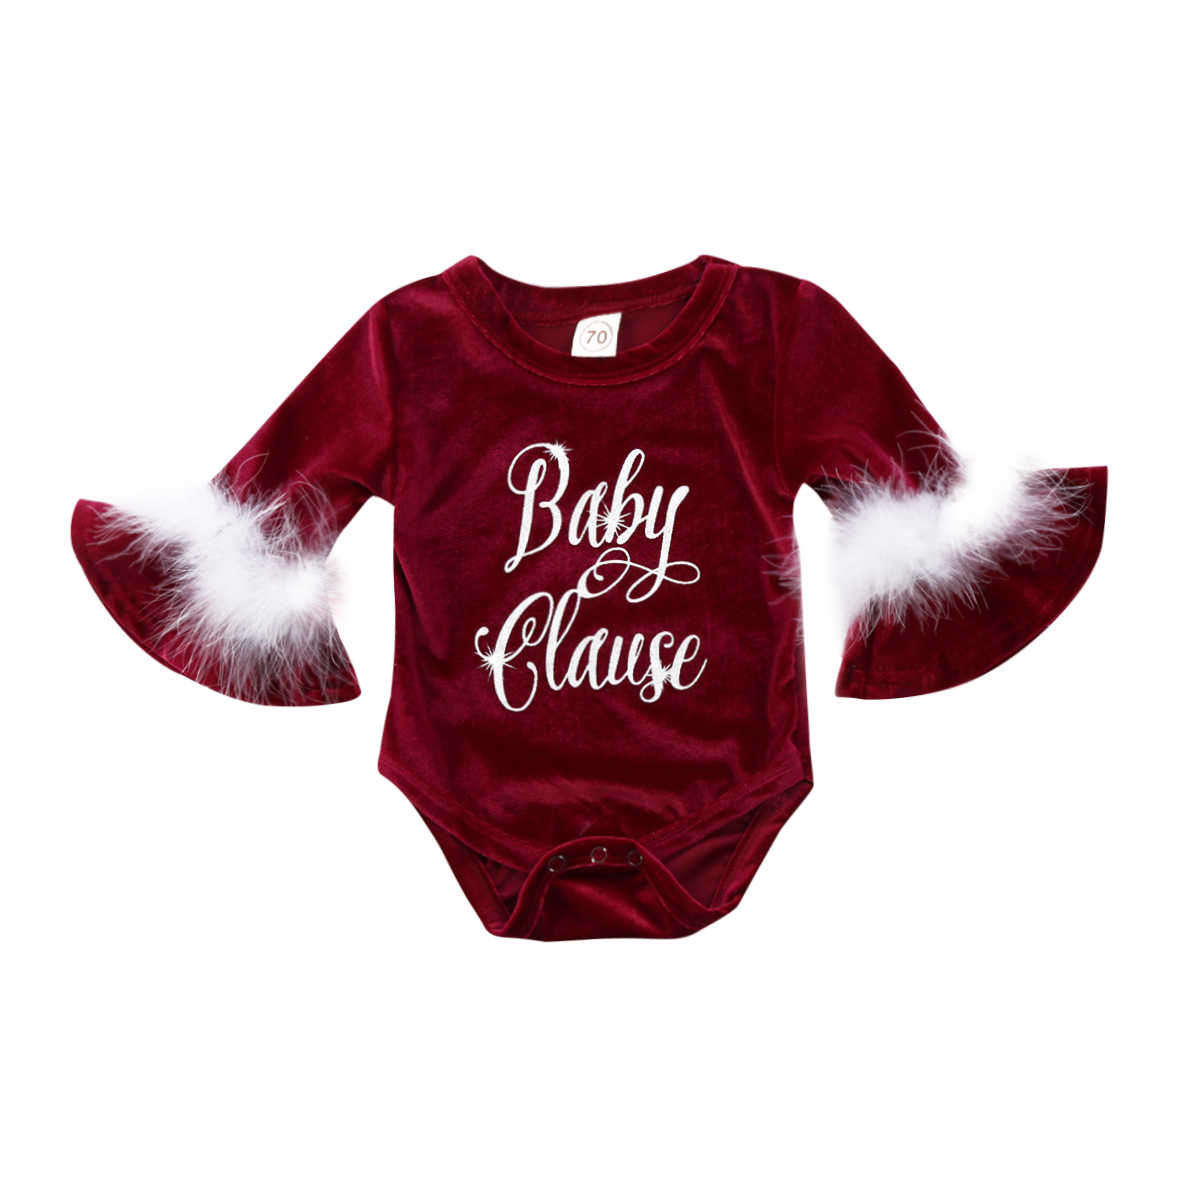 8b3246784 Detail Feedback Questions about Baby Rompers Cute Santa Baby Claus ...